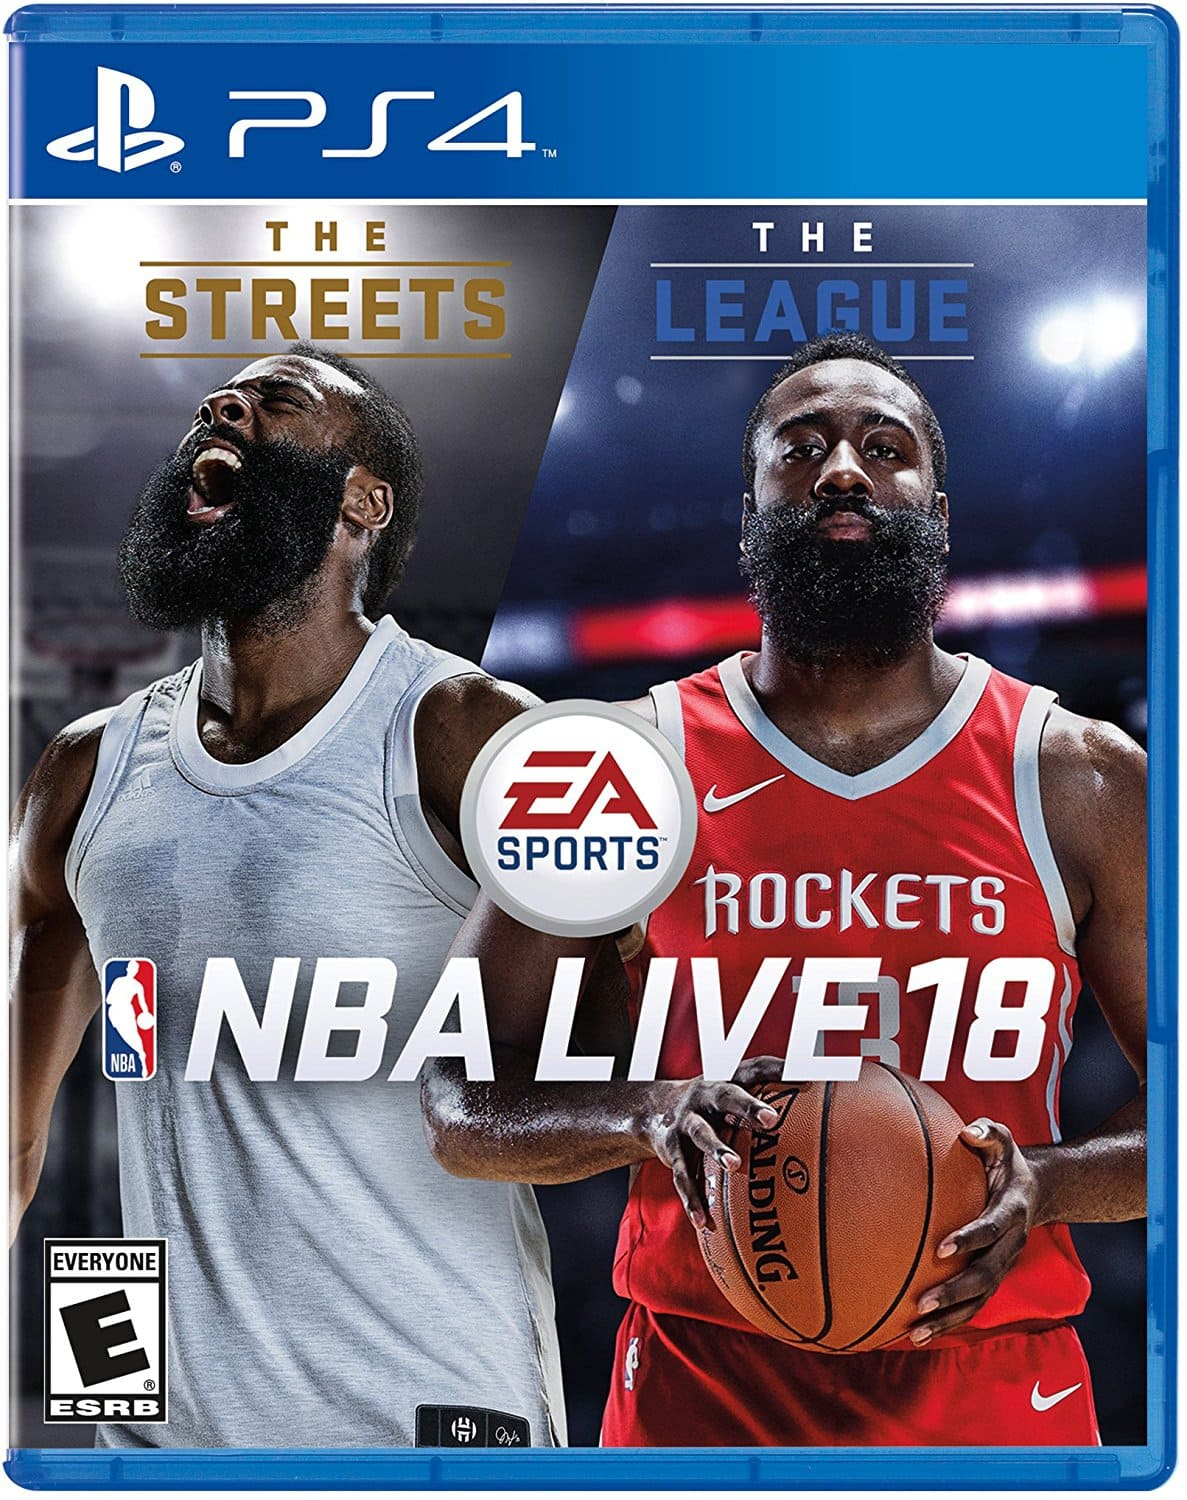 Best Buy Preorder - NBA Live 2018 (PS4/Xbox One Physical or Digital) $39.99 ($31.99 w/ GCU)